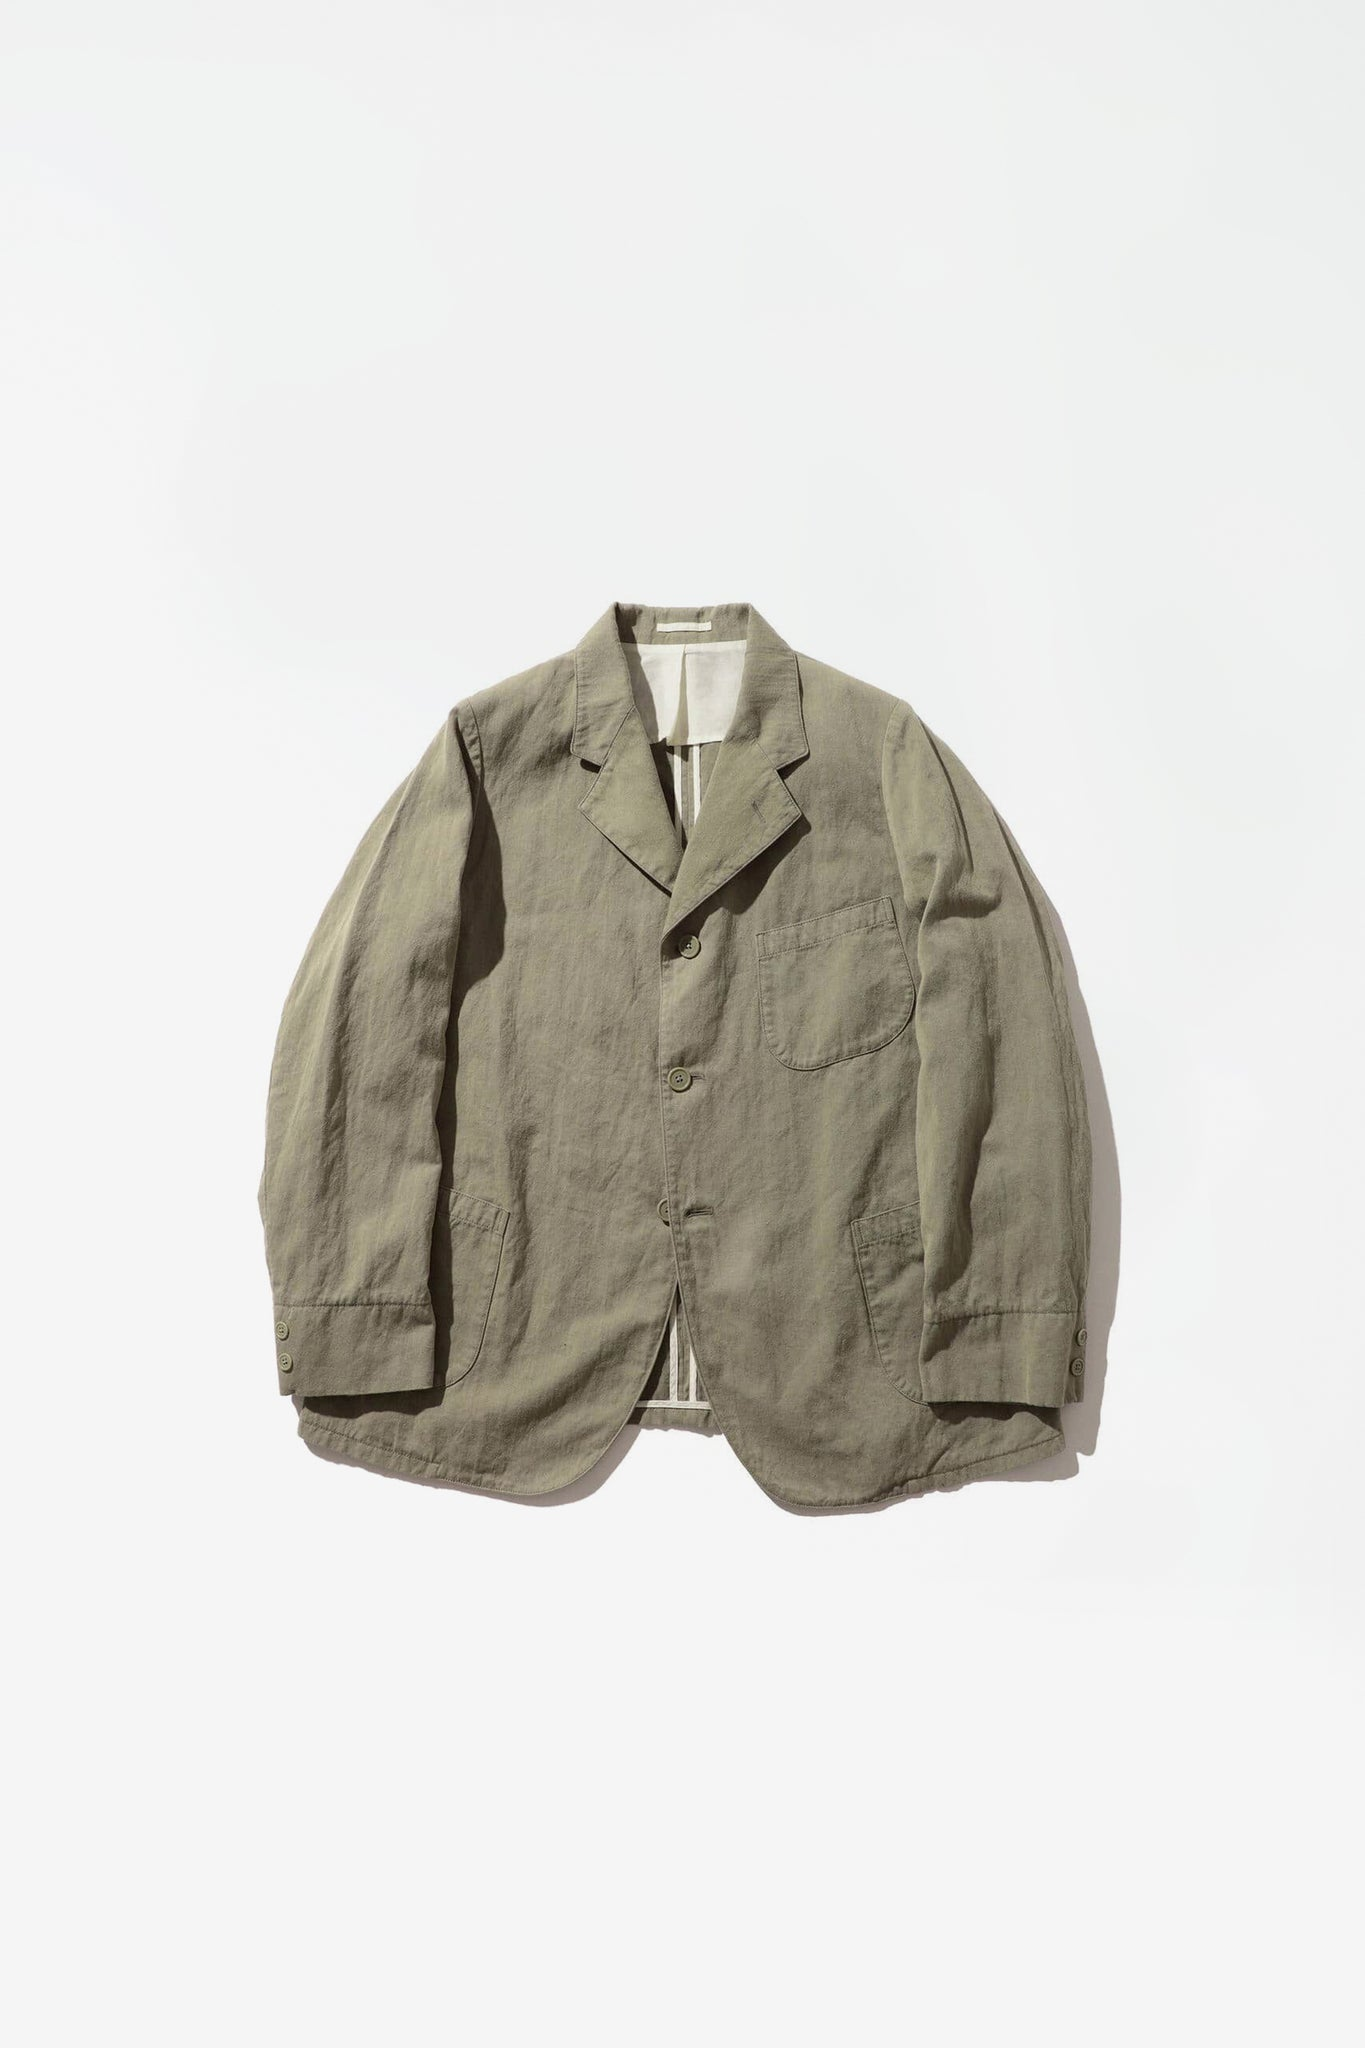 Work jacket cotton/linen herringbone olive